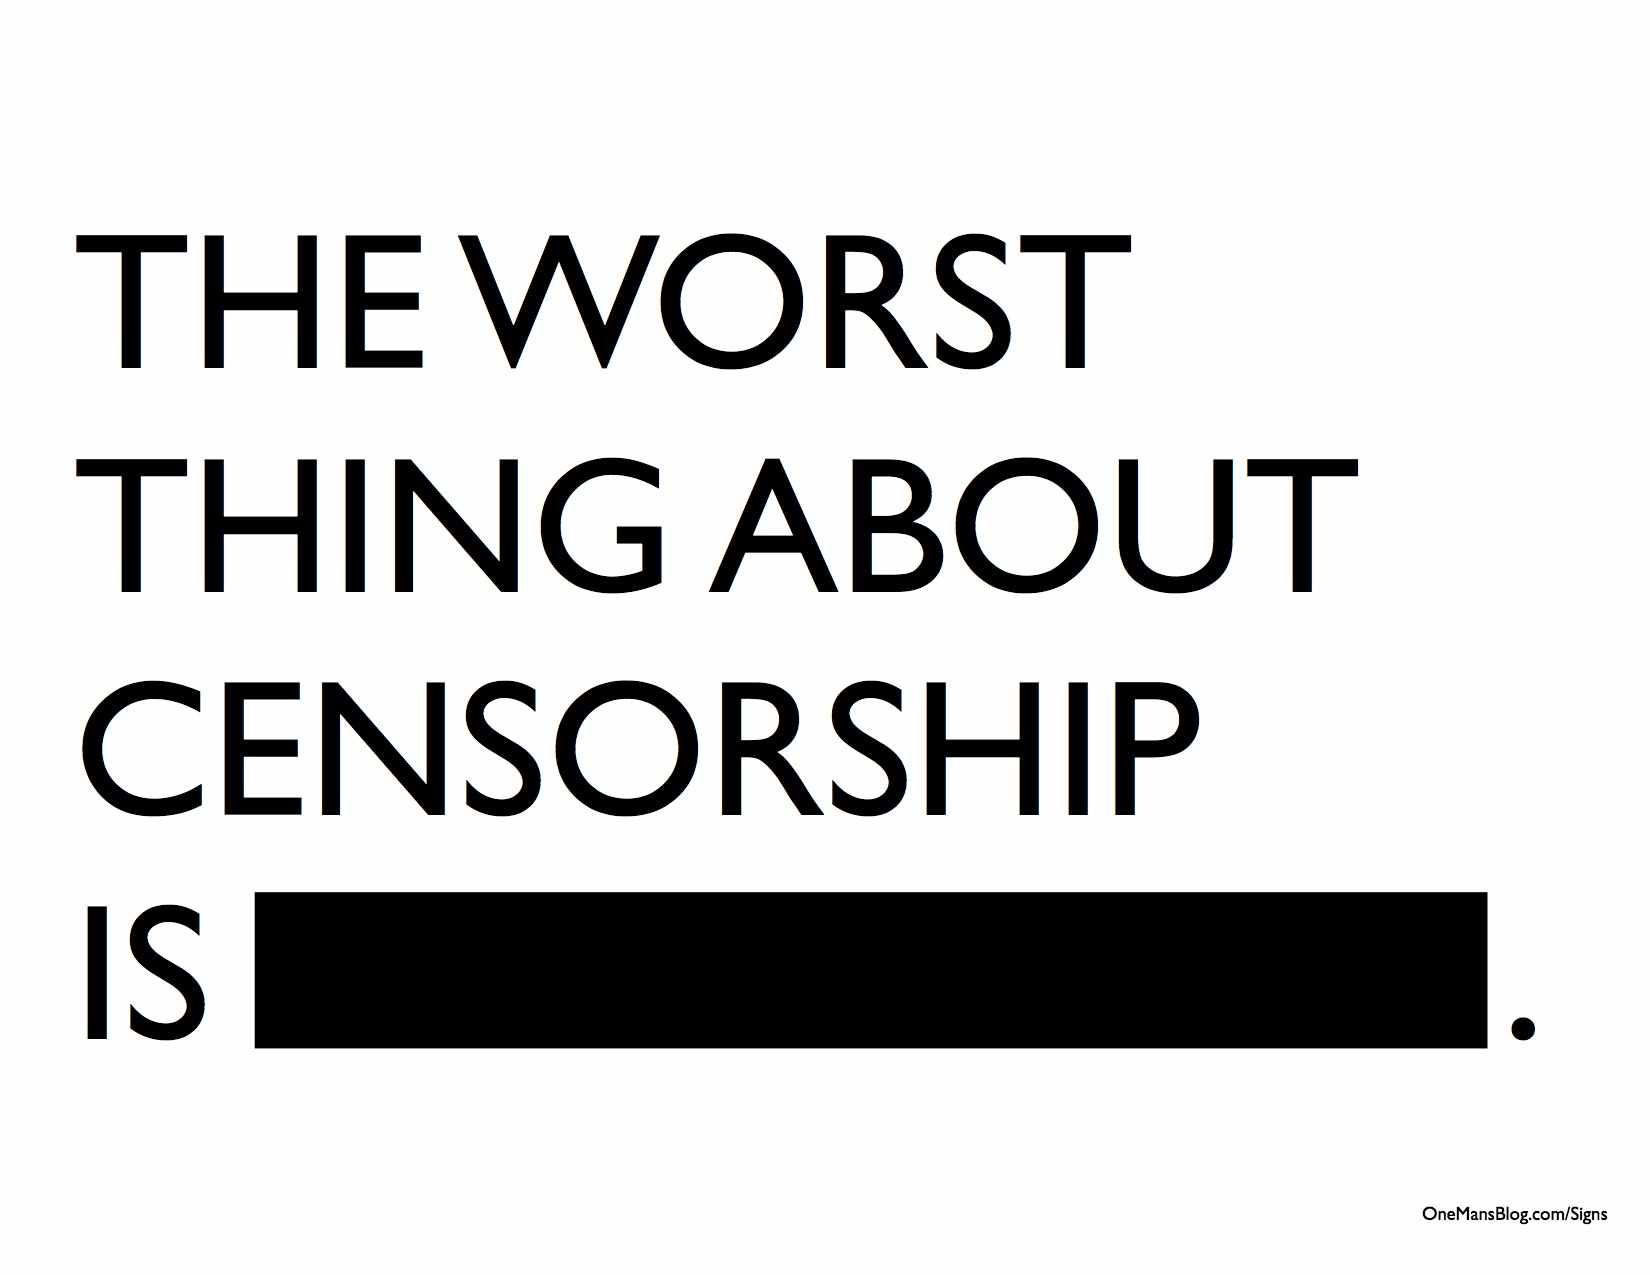 Worst-Thing-About-Censorship.jpg